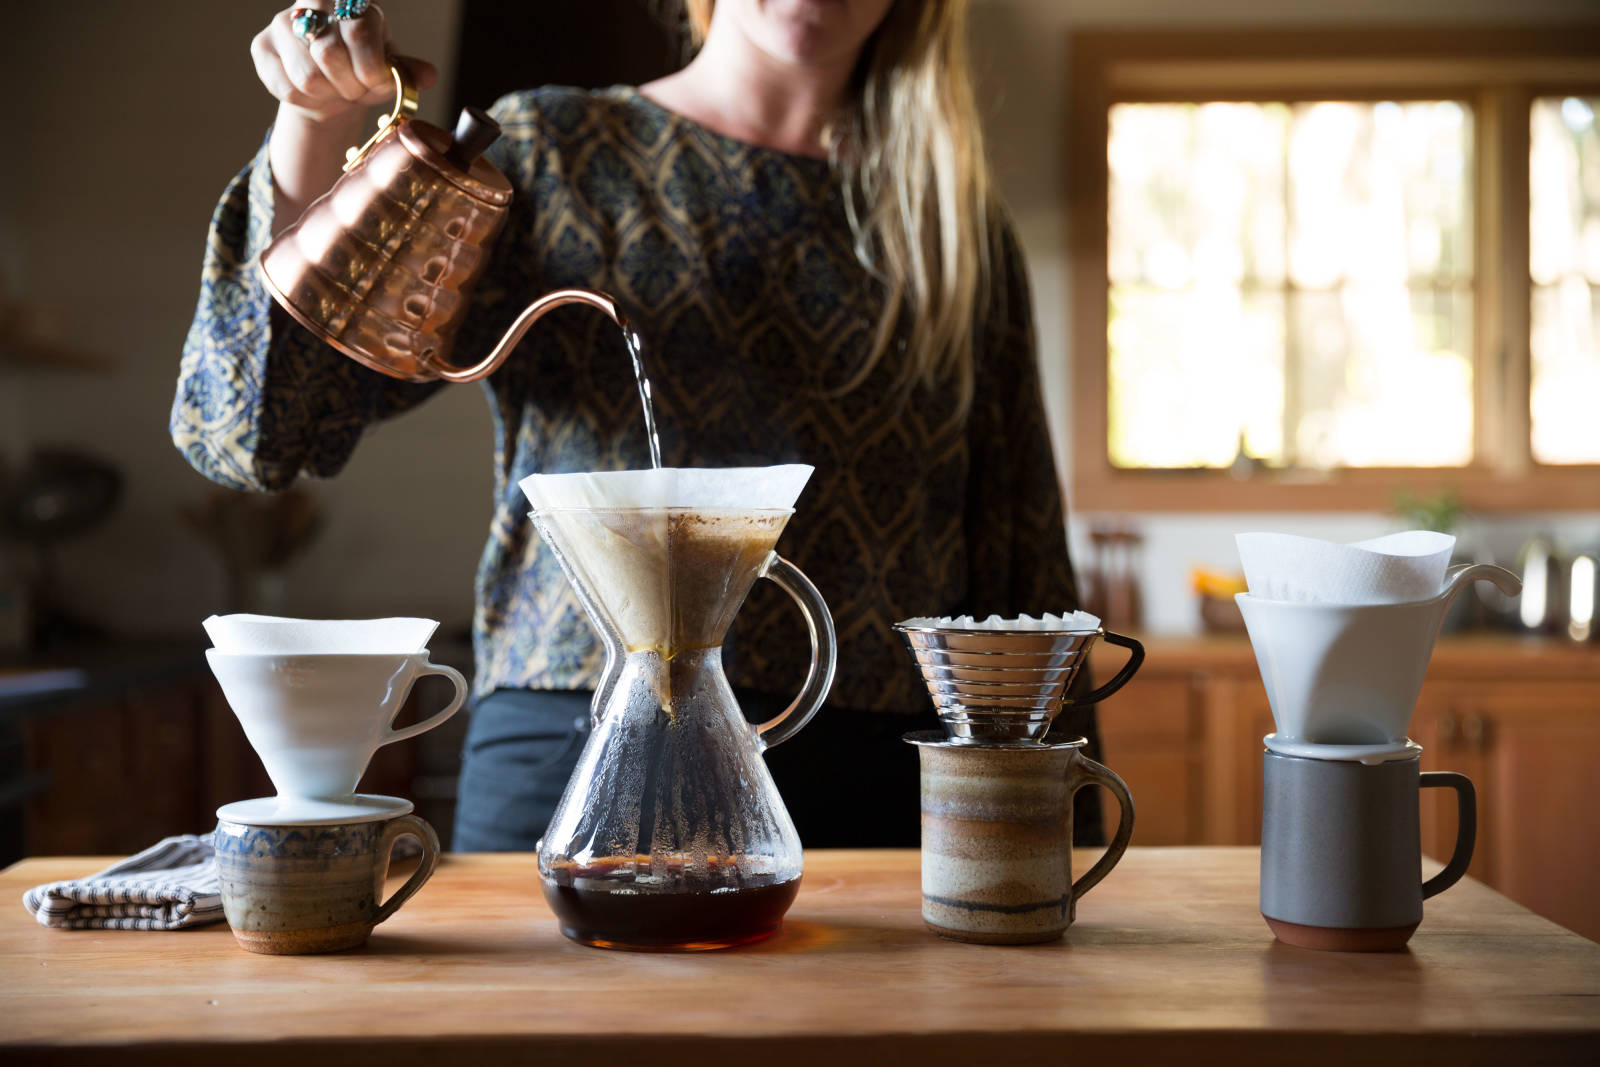 characteristic coffee pour-over being brewed